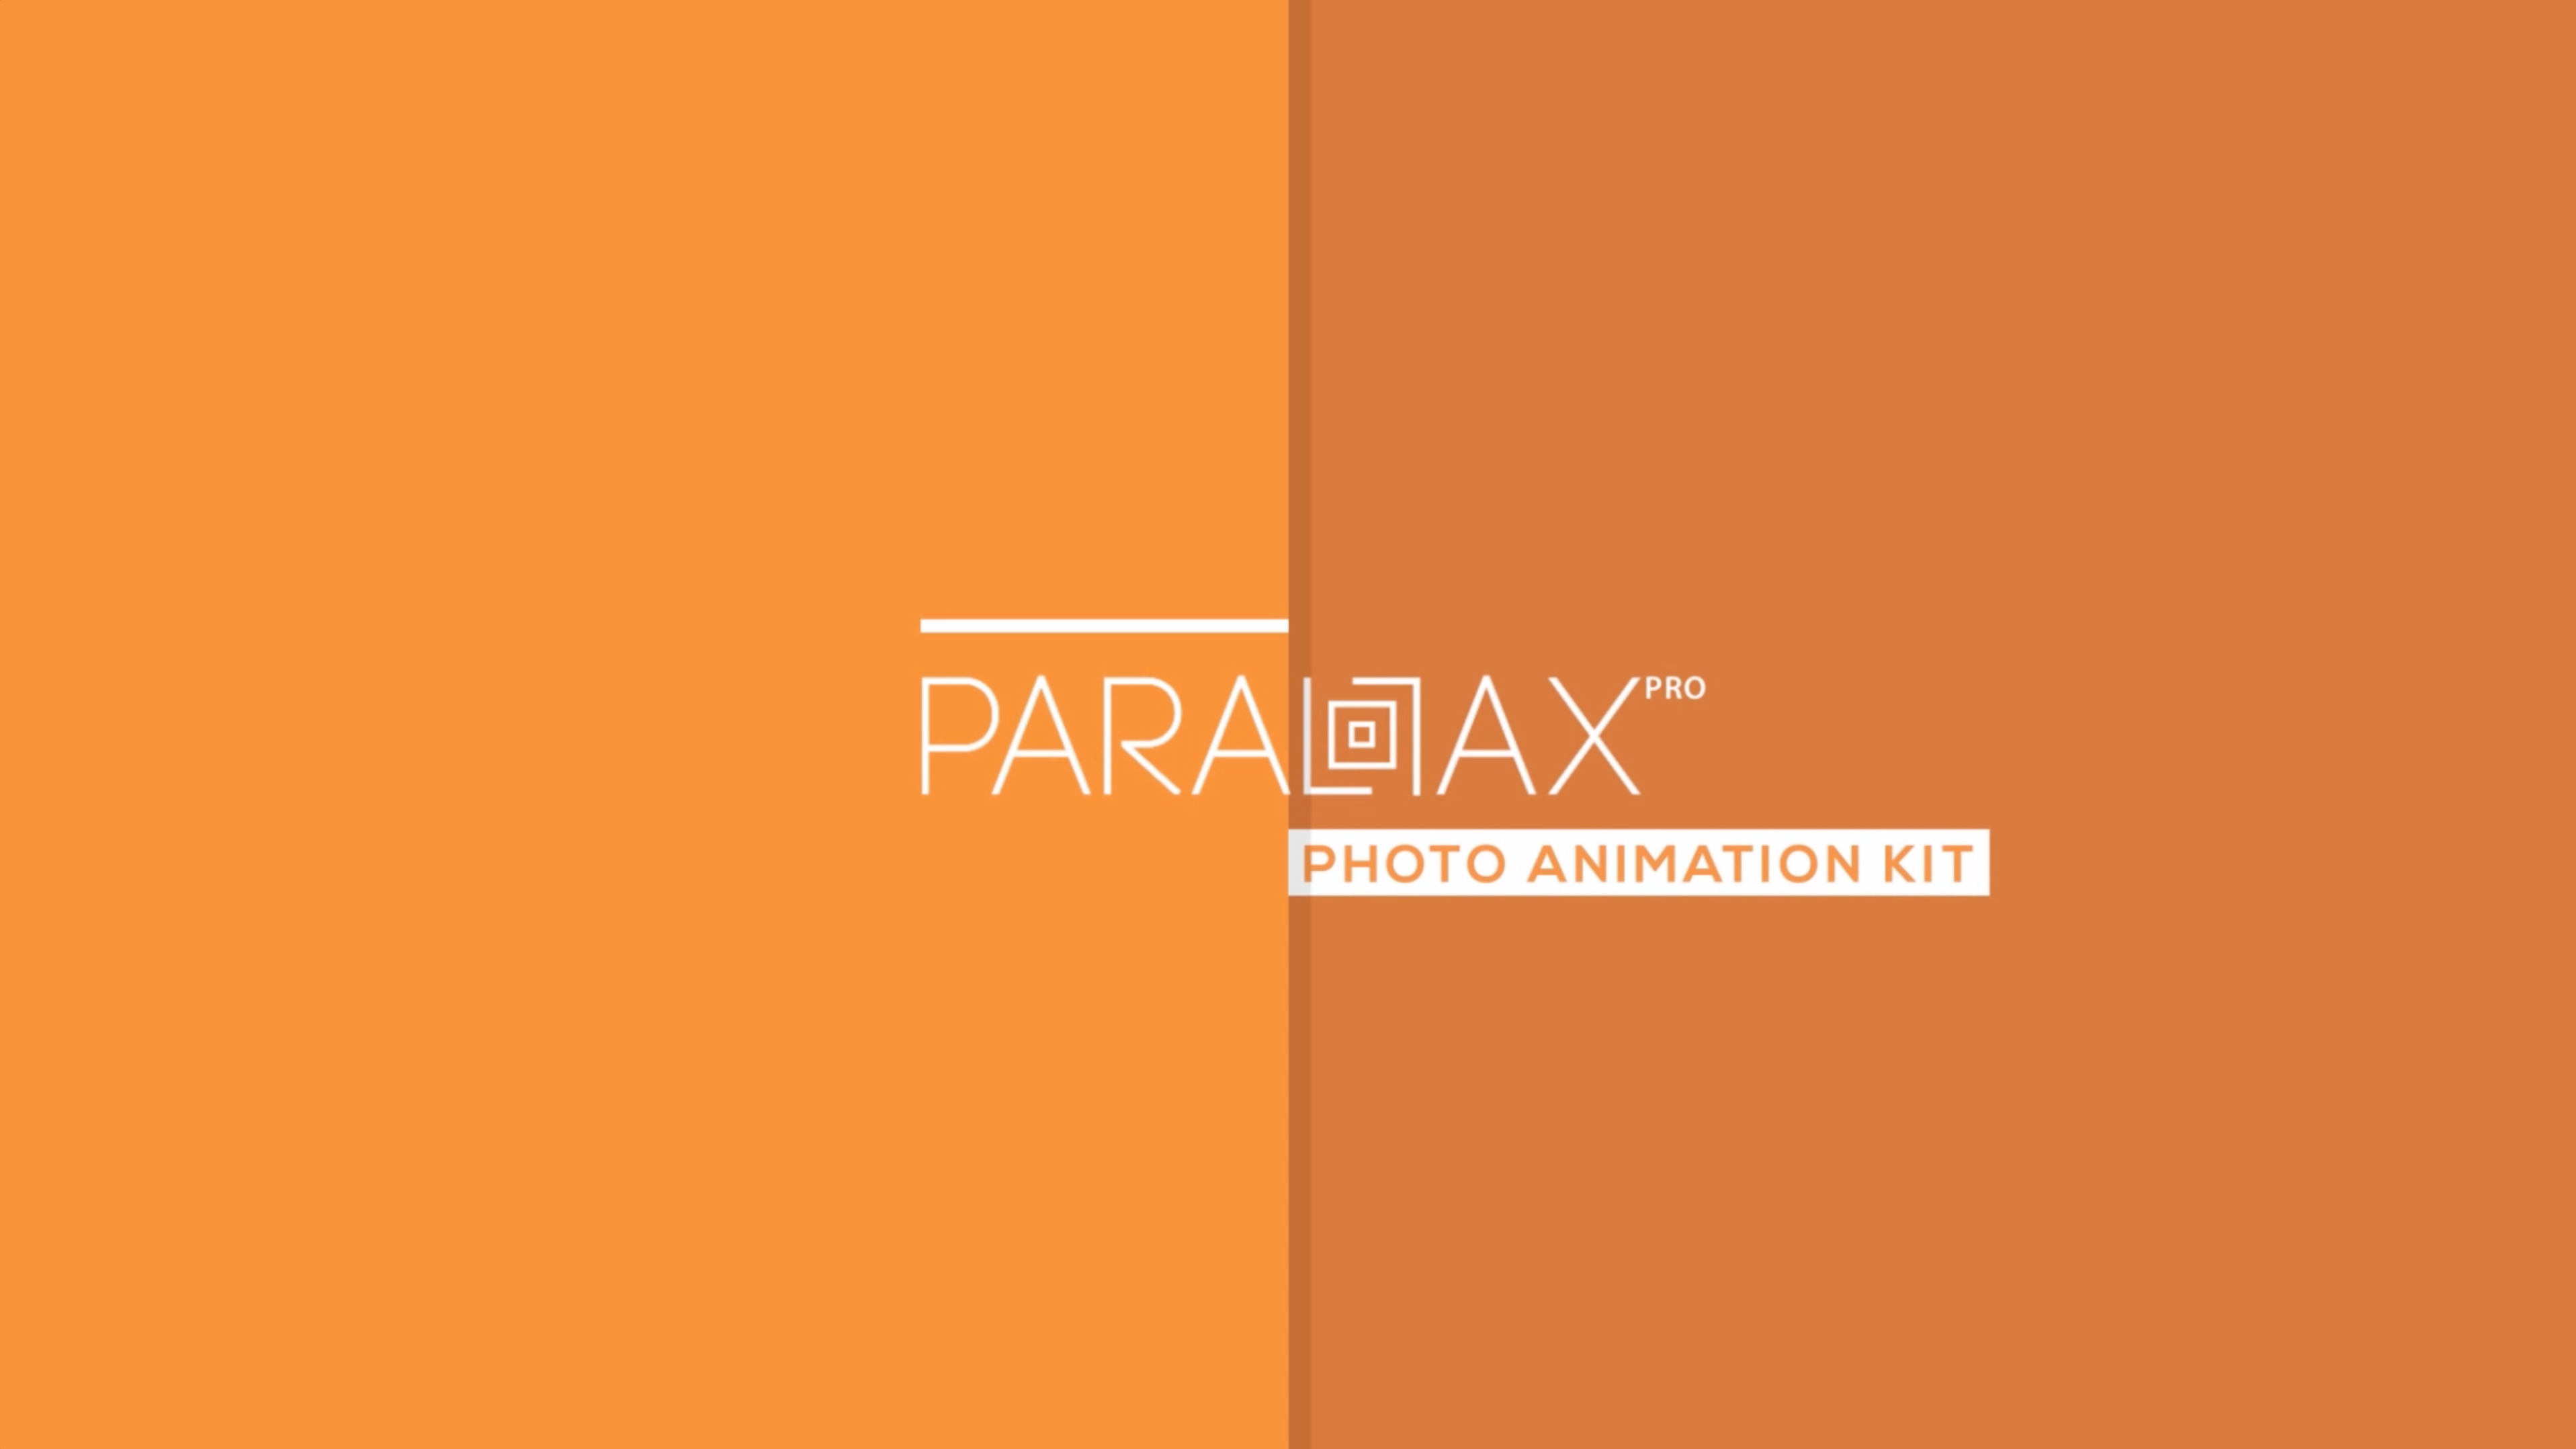 Parallax Pro Photo Animation Kit After Effects Template Free Hd Video Clips Stock Footage At Videezy